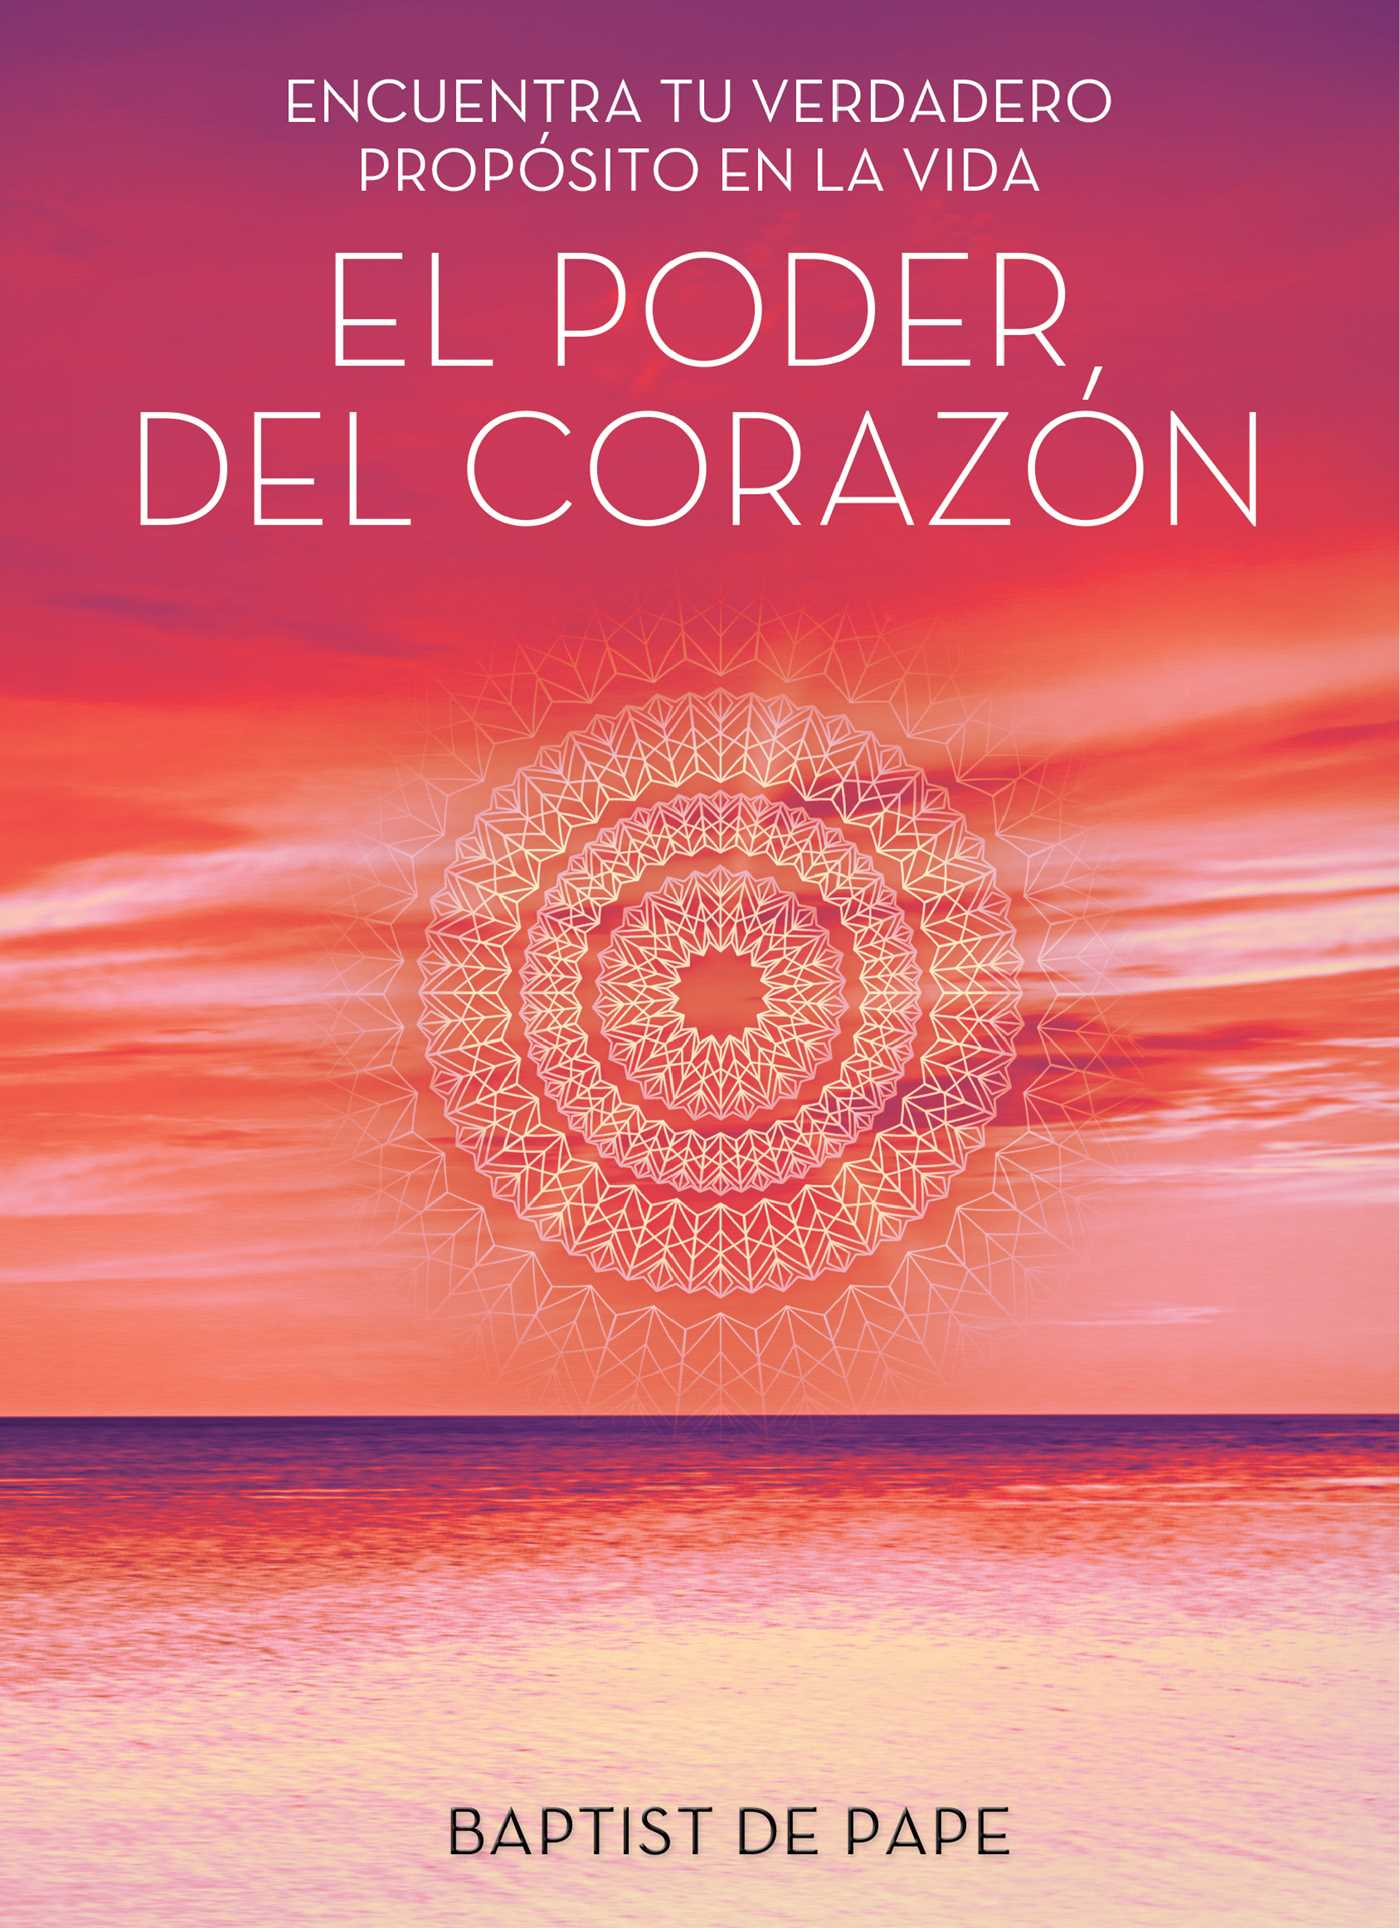 Poder-del-corazon-(the-power-of-the-heart-spanish-9781476789491_hr